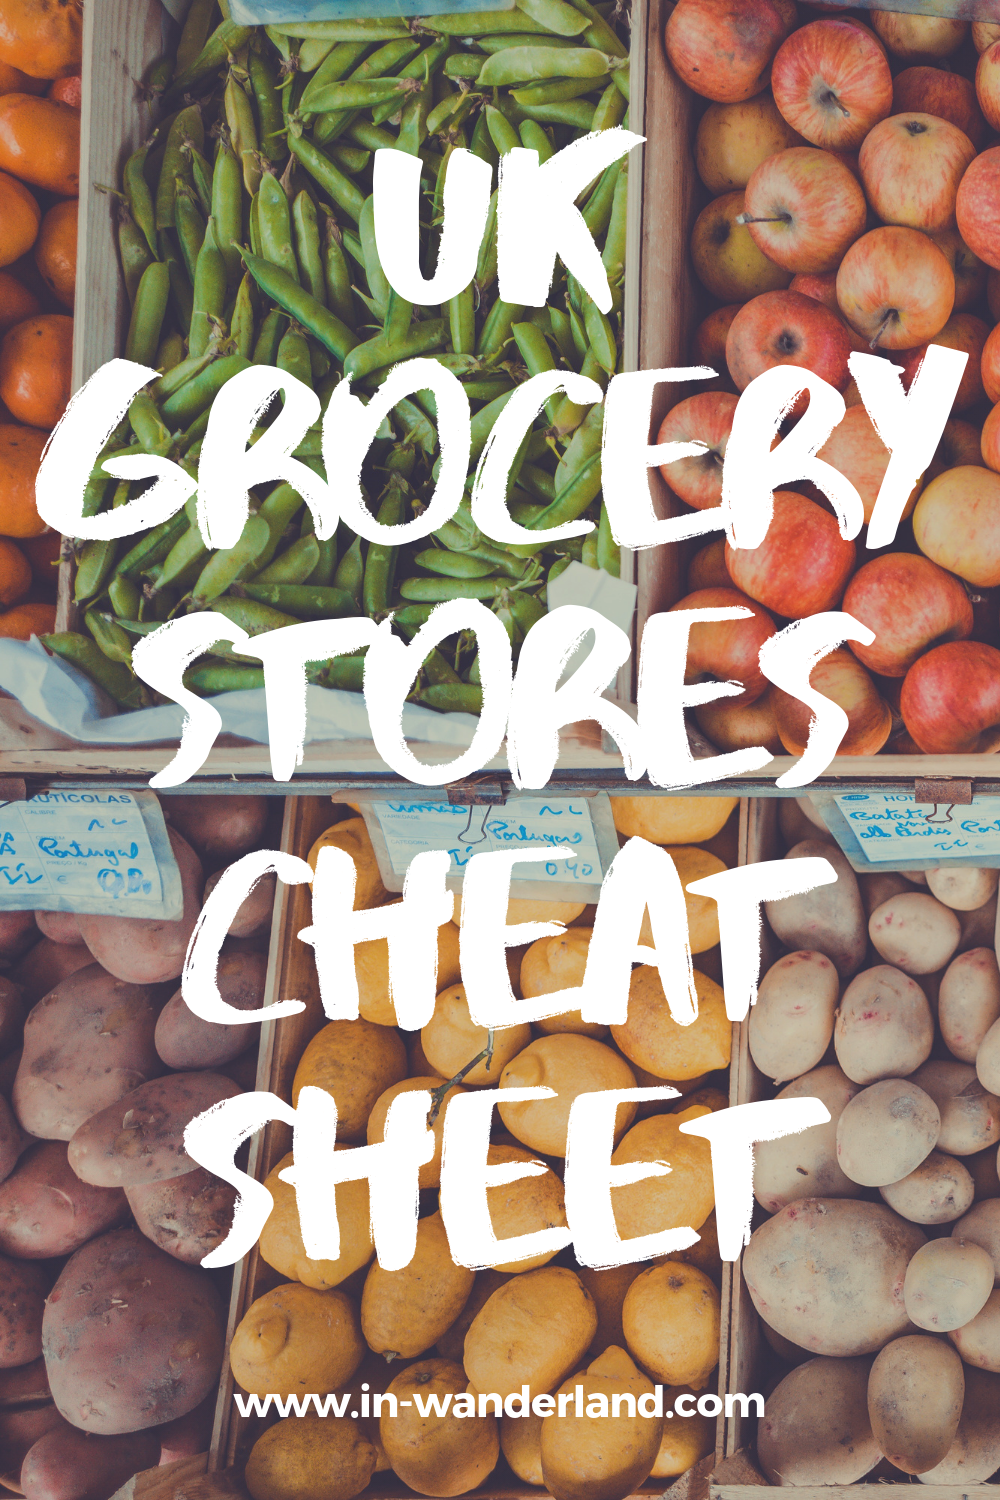 A Guide to UK Supermarket Chains